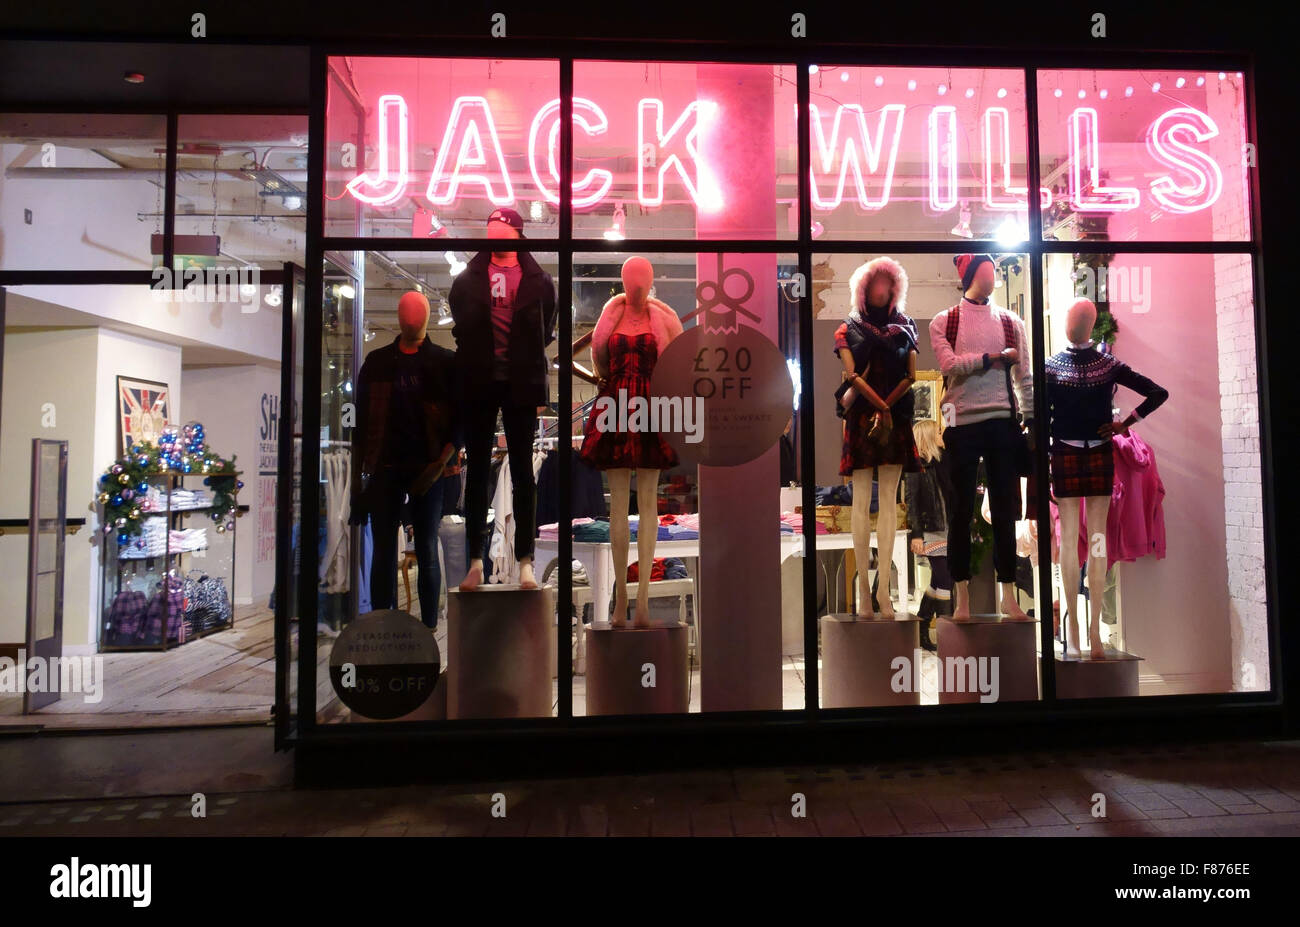 Jack Wills fashion store, Carnaby Street, London - Stock Image